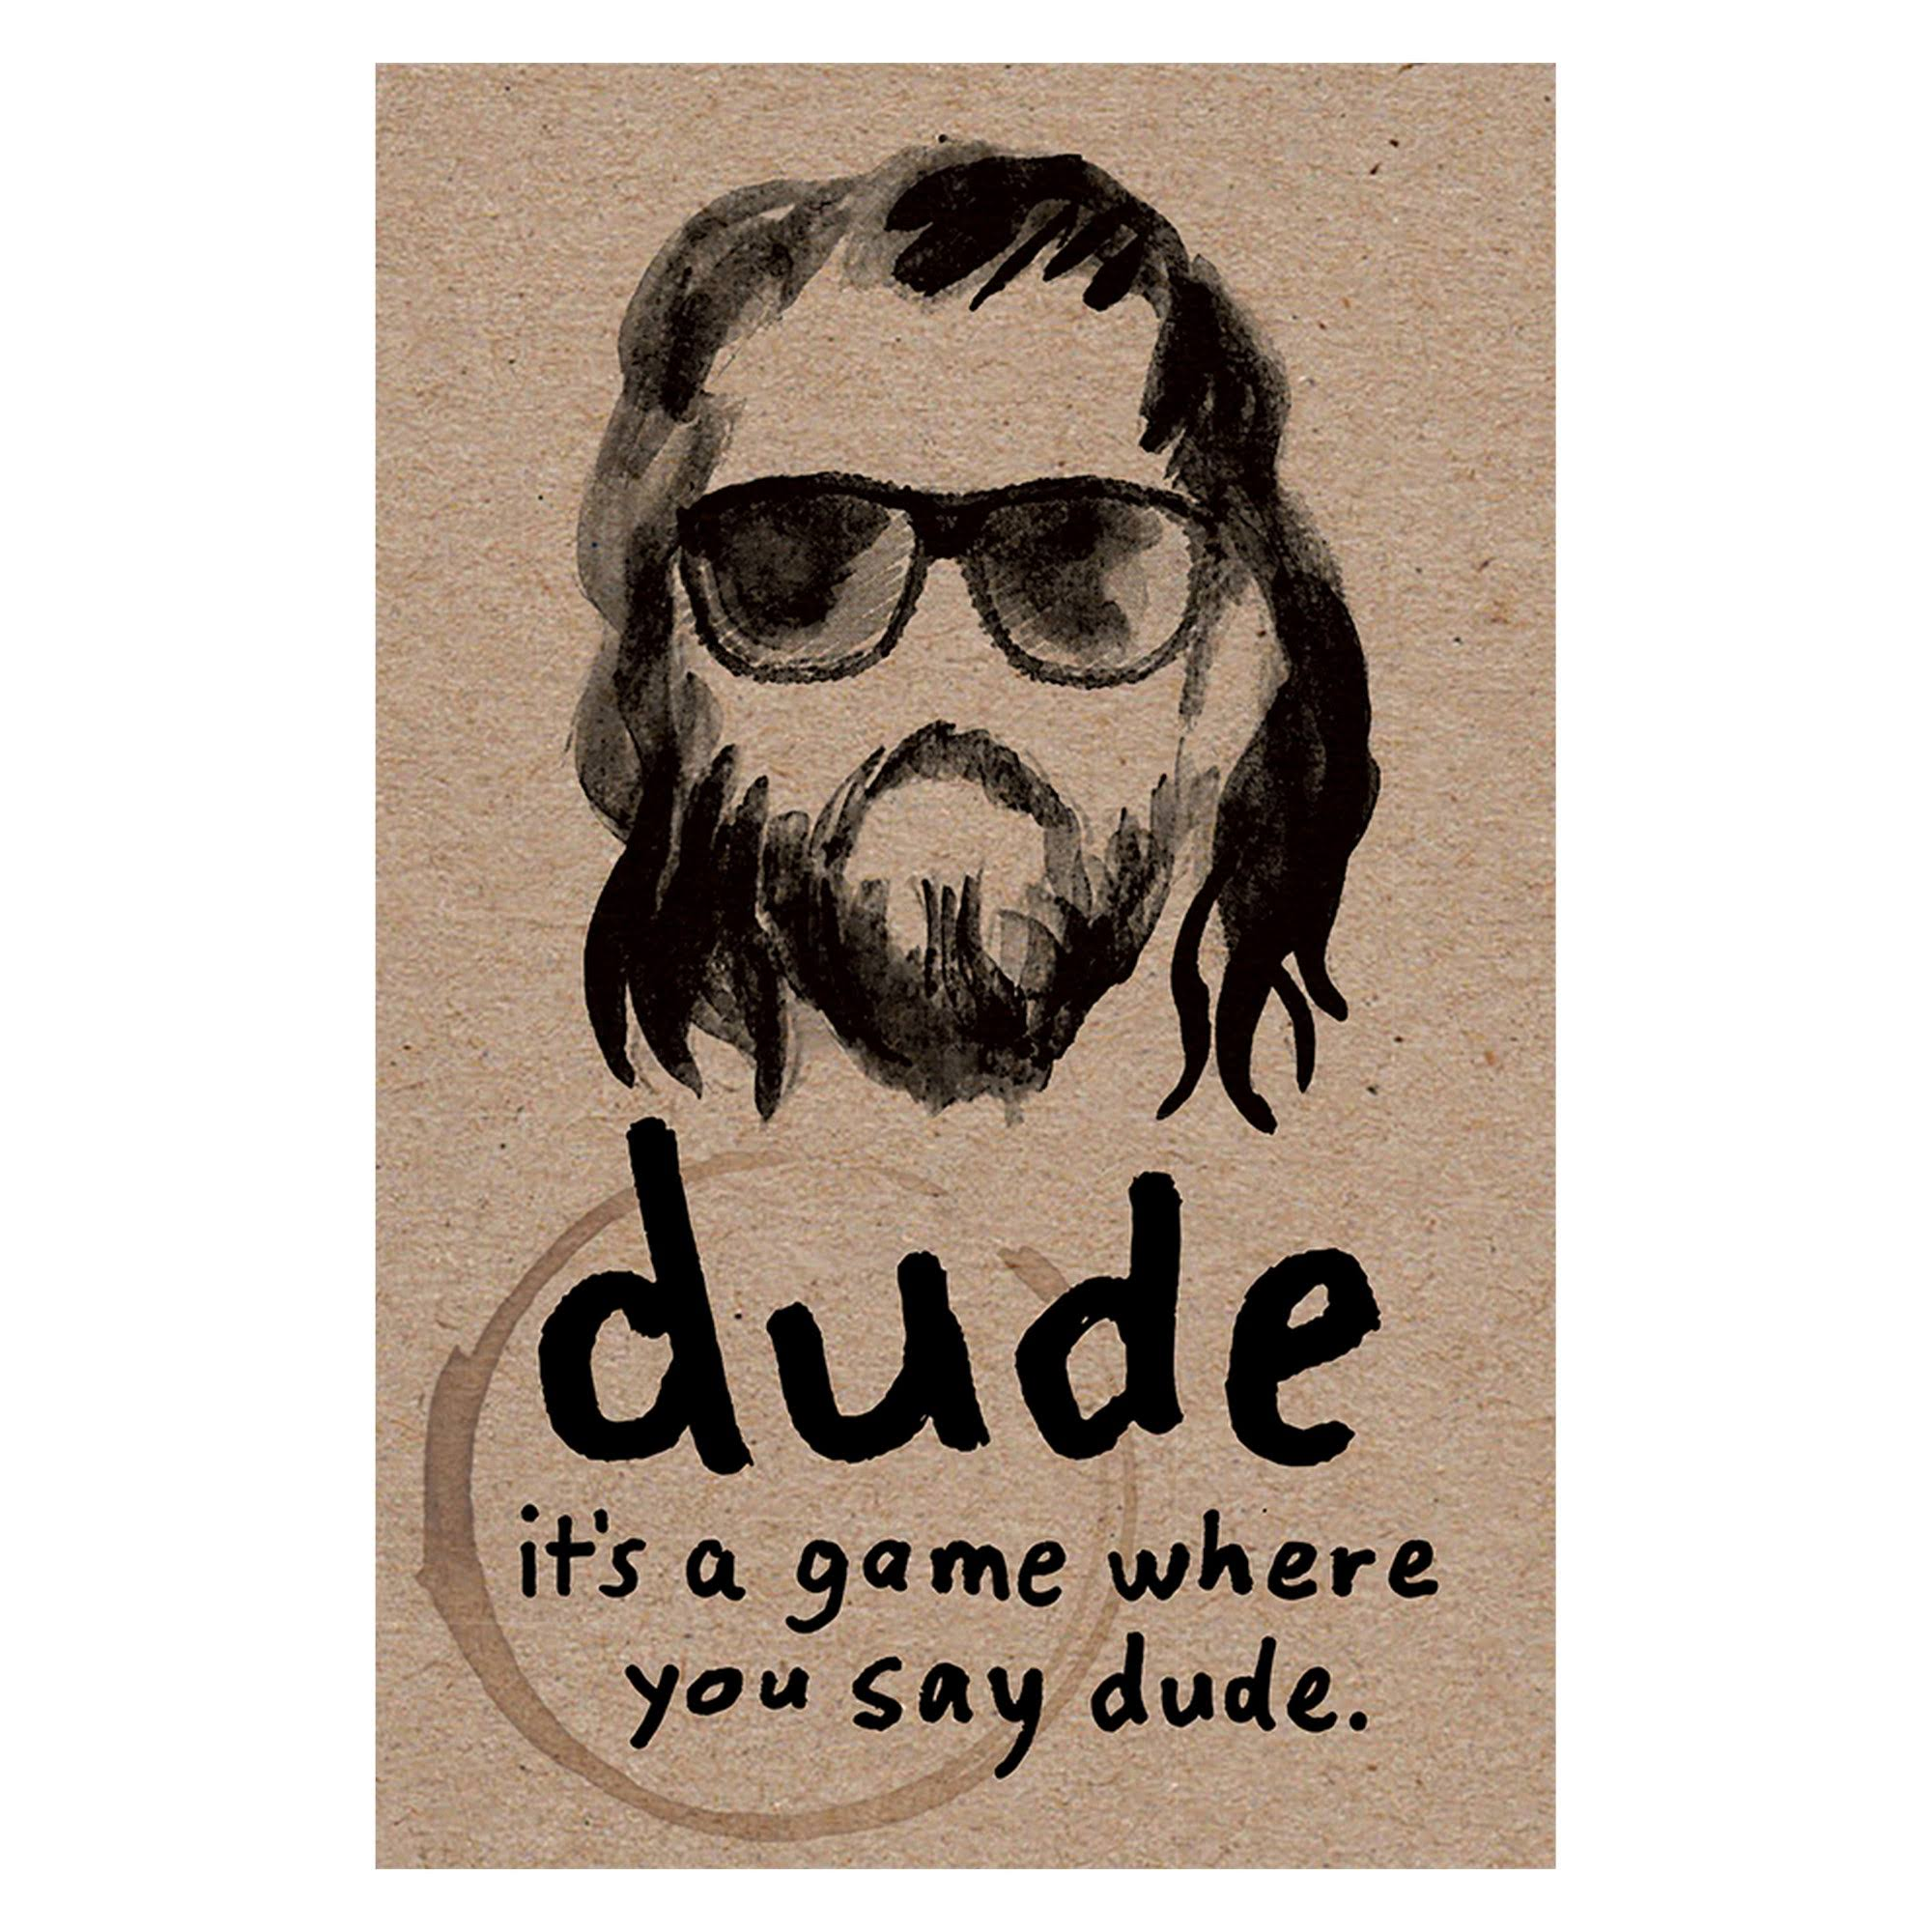 Dude Card Game, Board Games